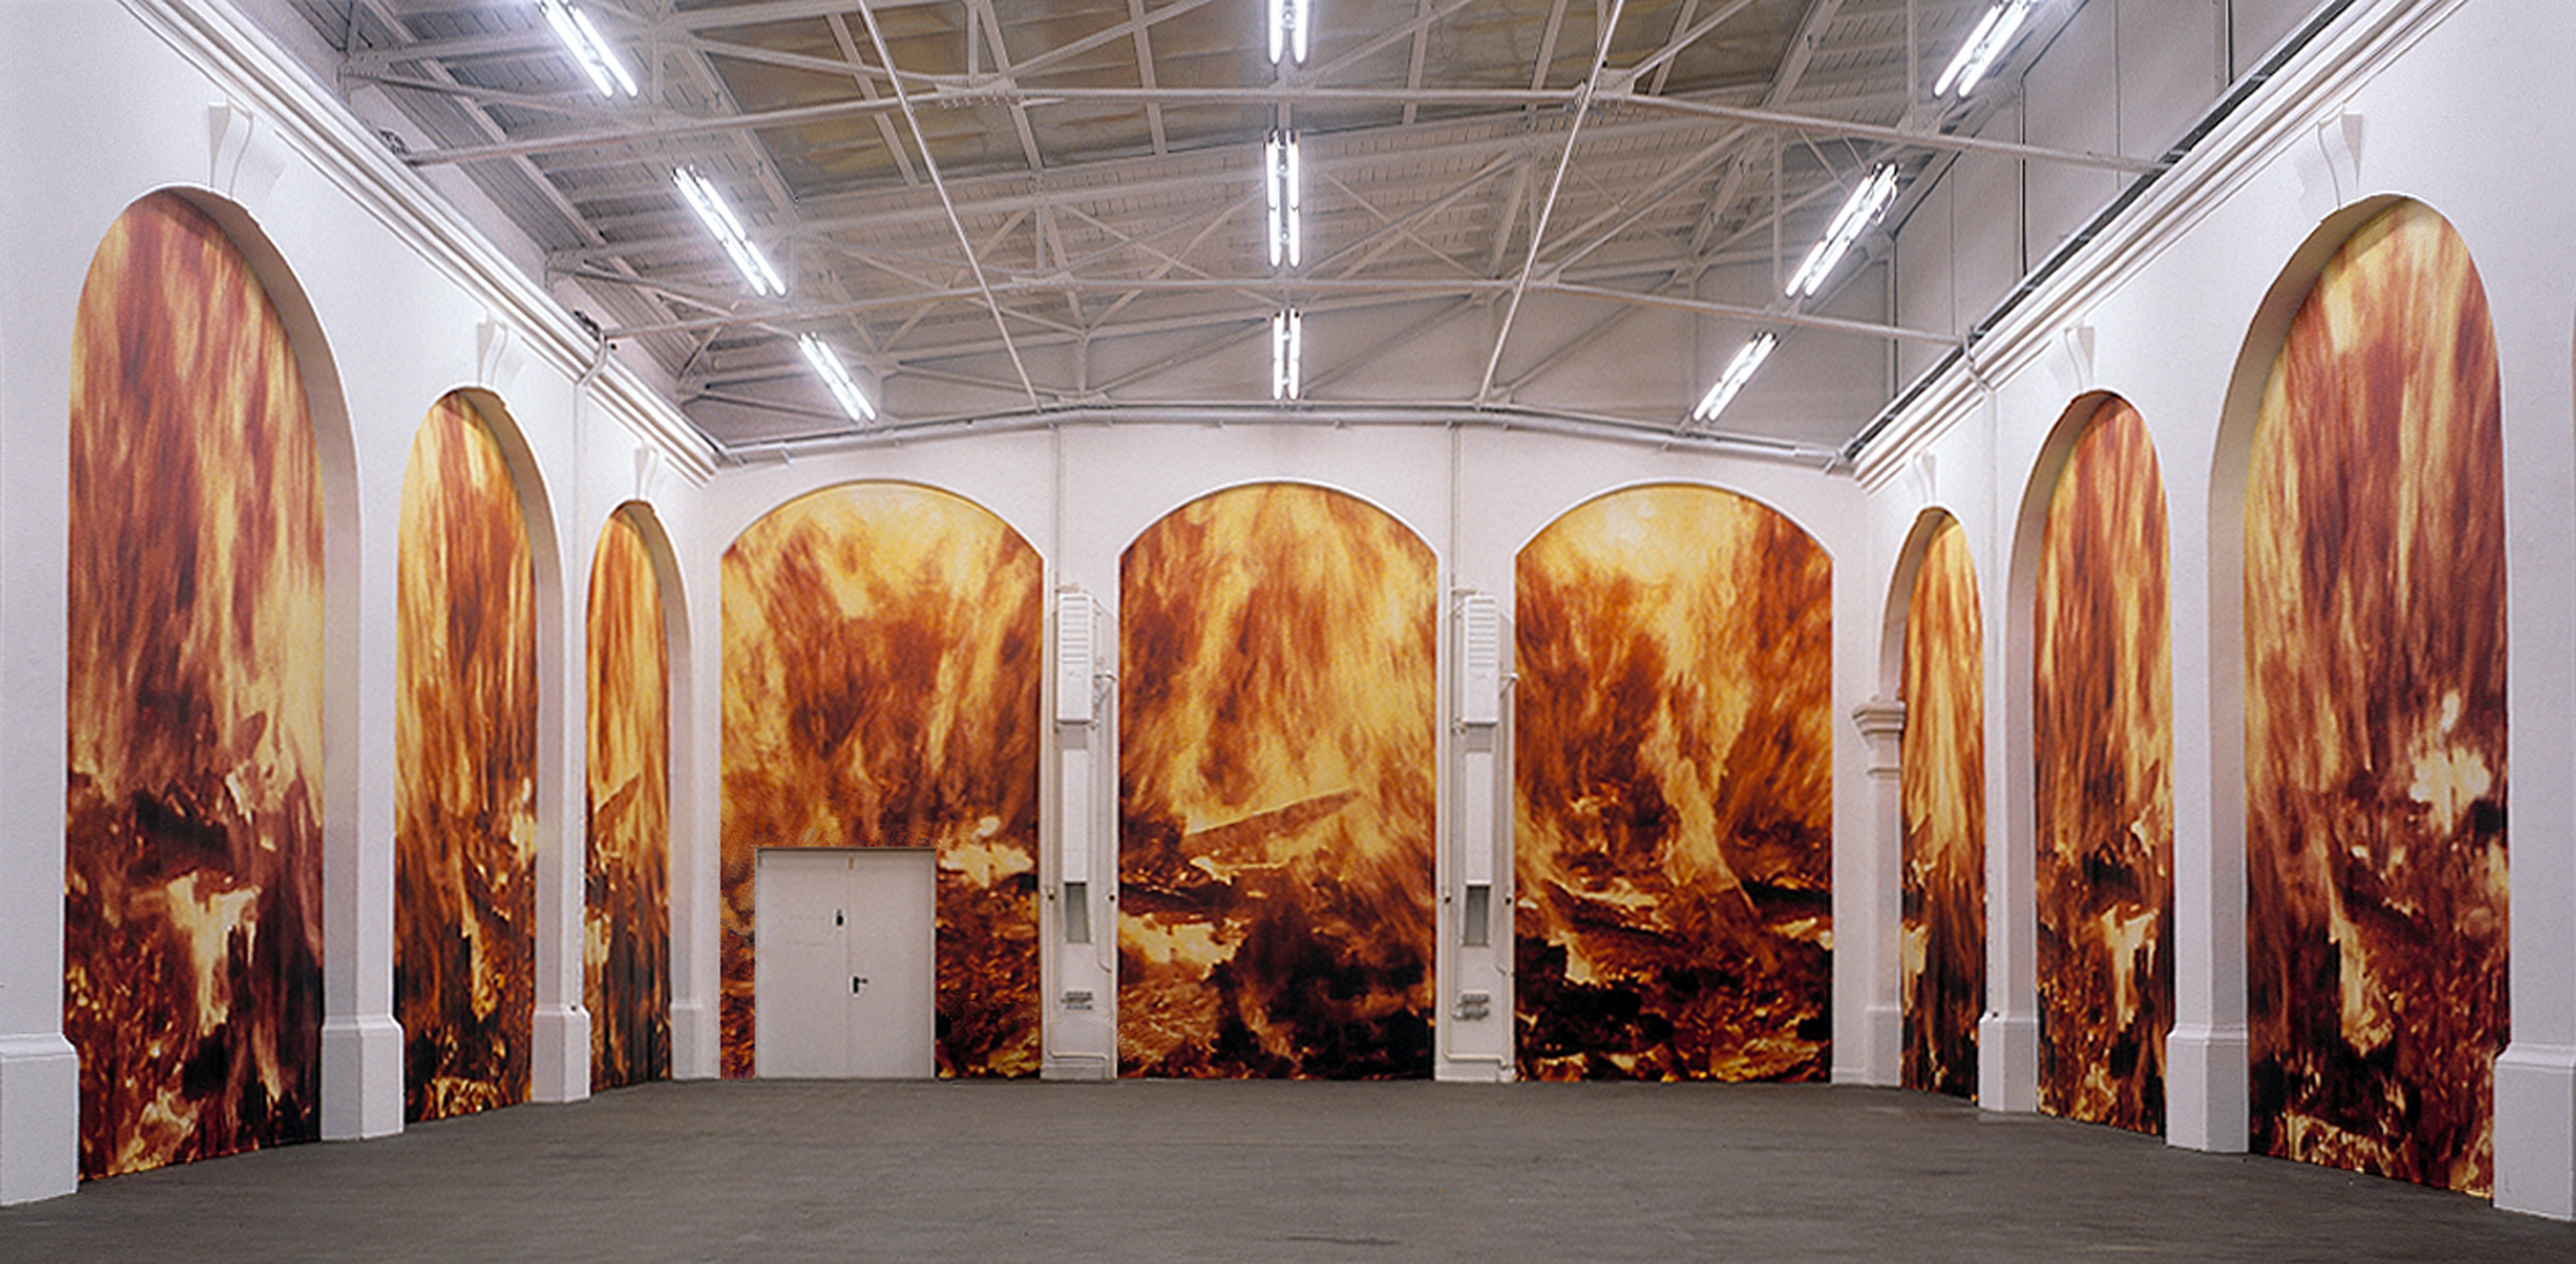 installation by Simone Berger